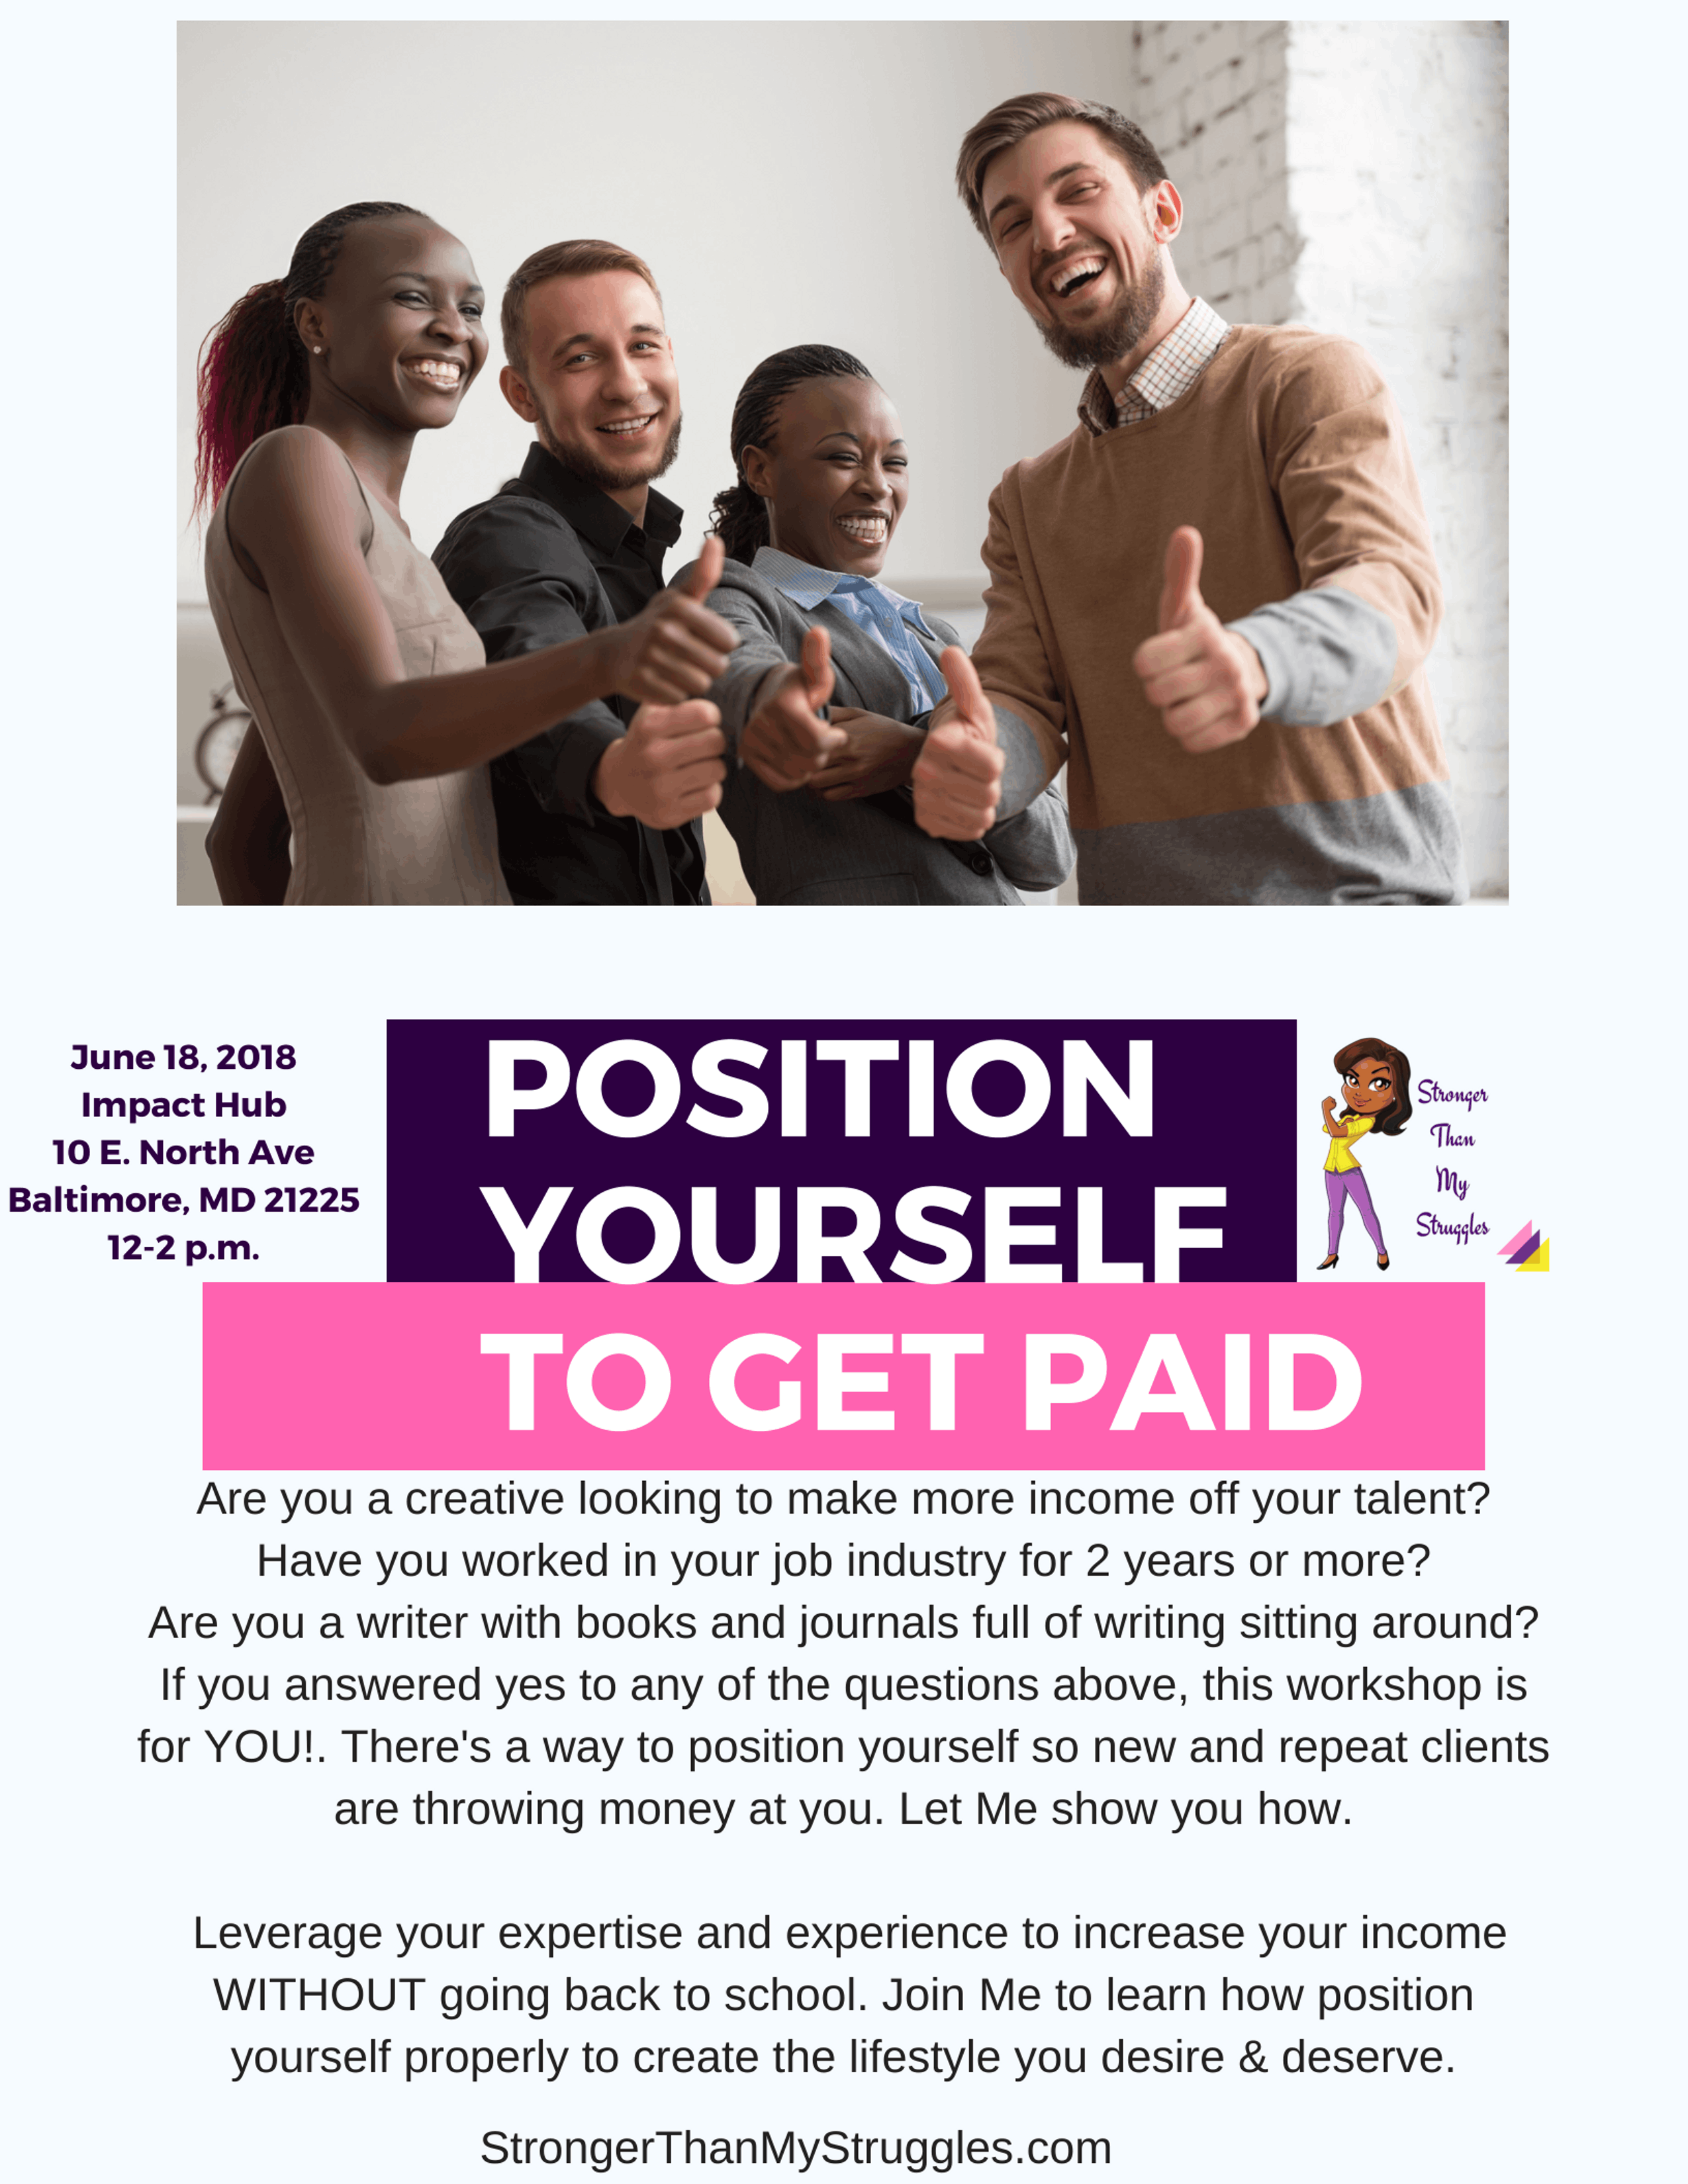 Position Yourself To Get Paid